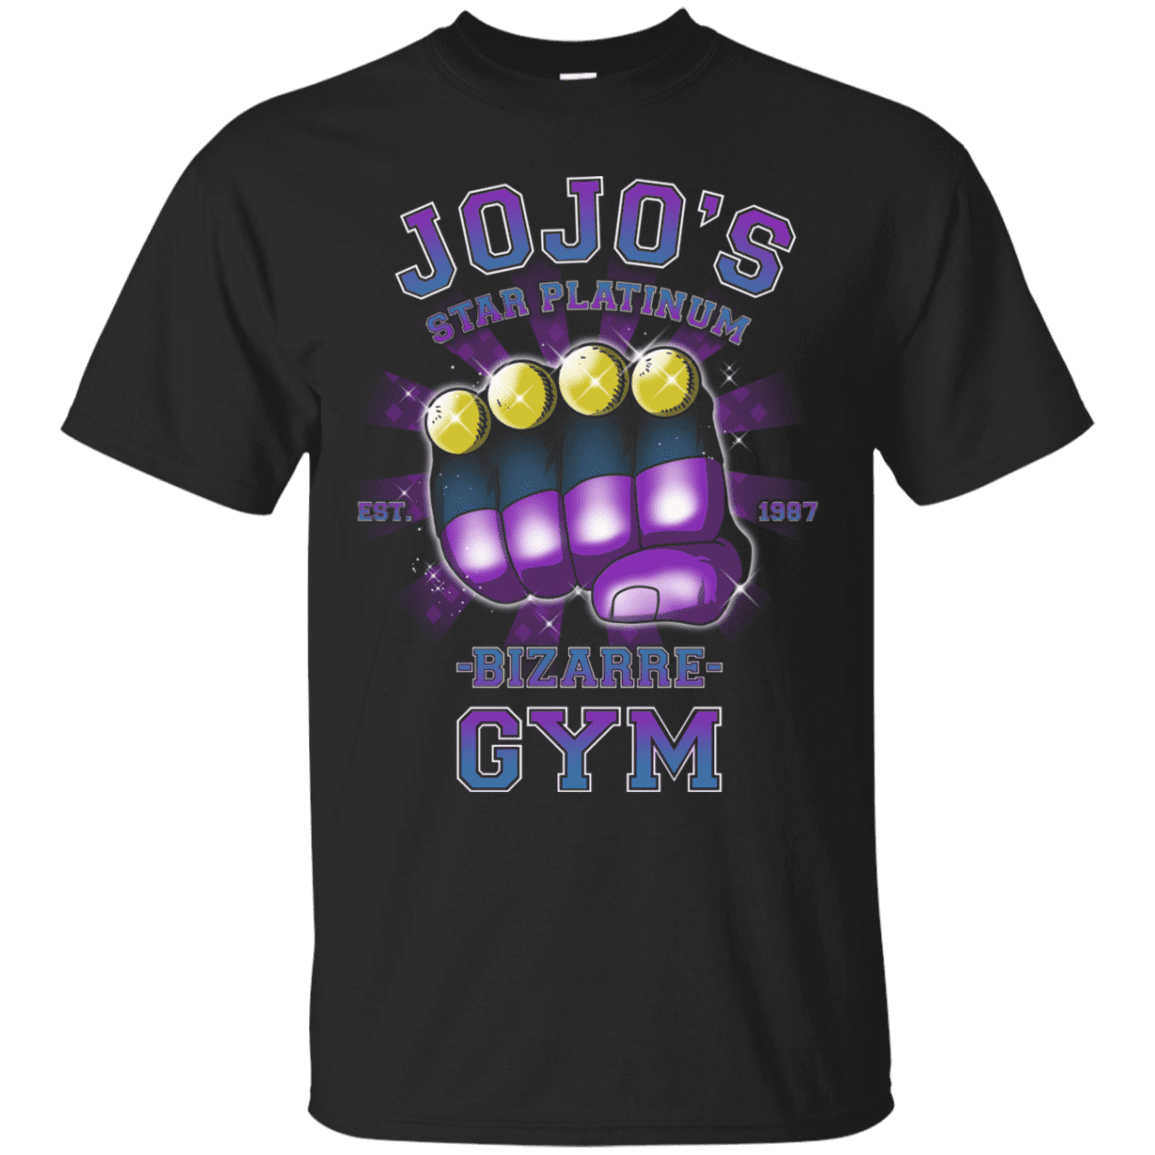 Star Platinum Gym T-Shirt